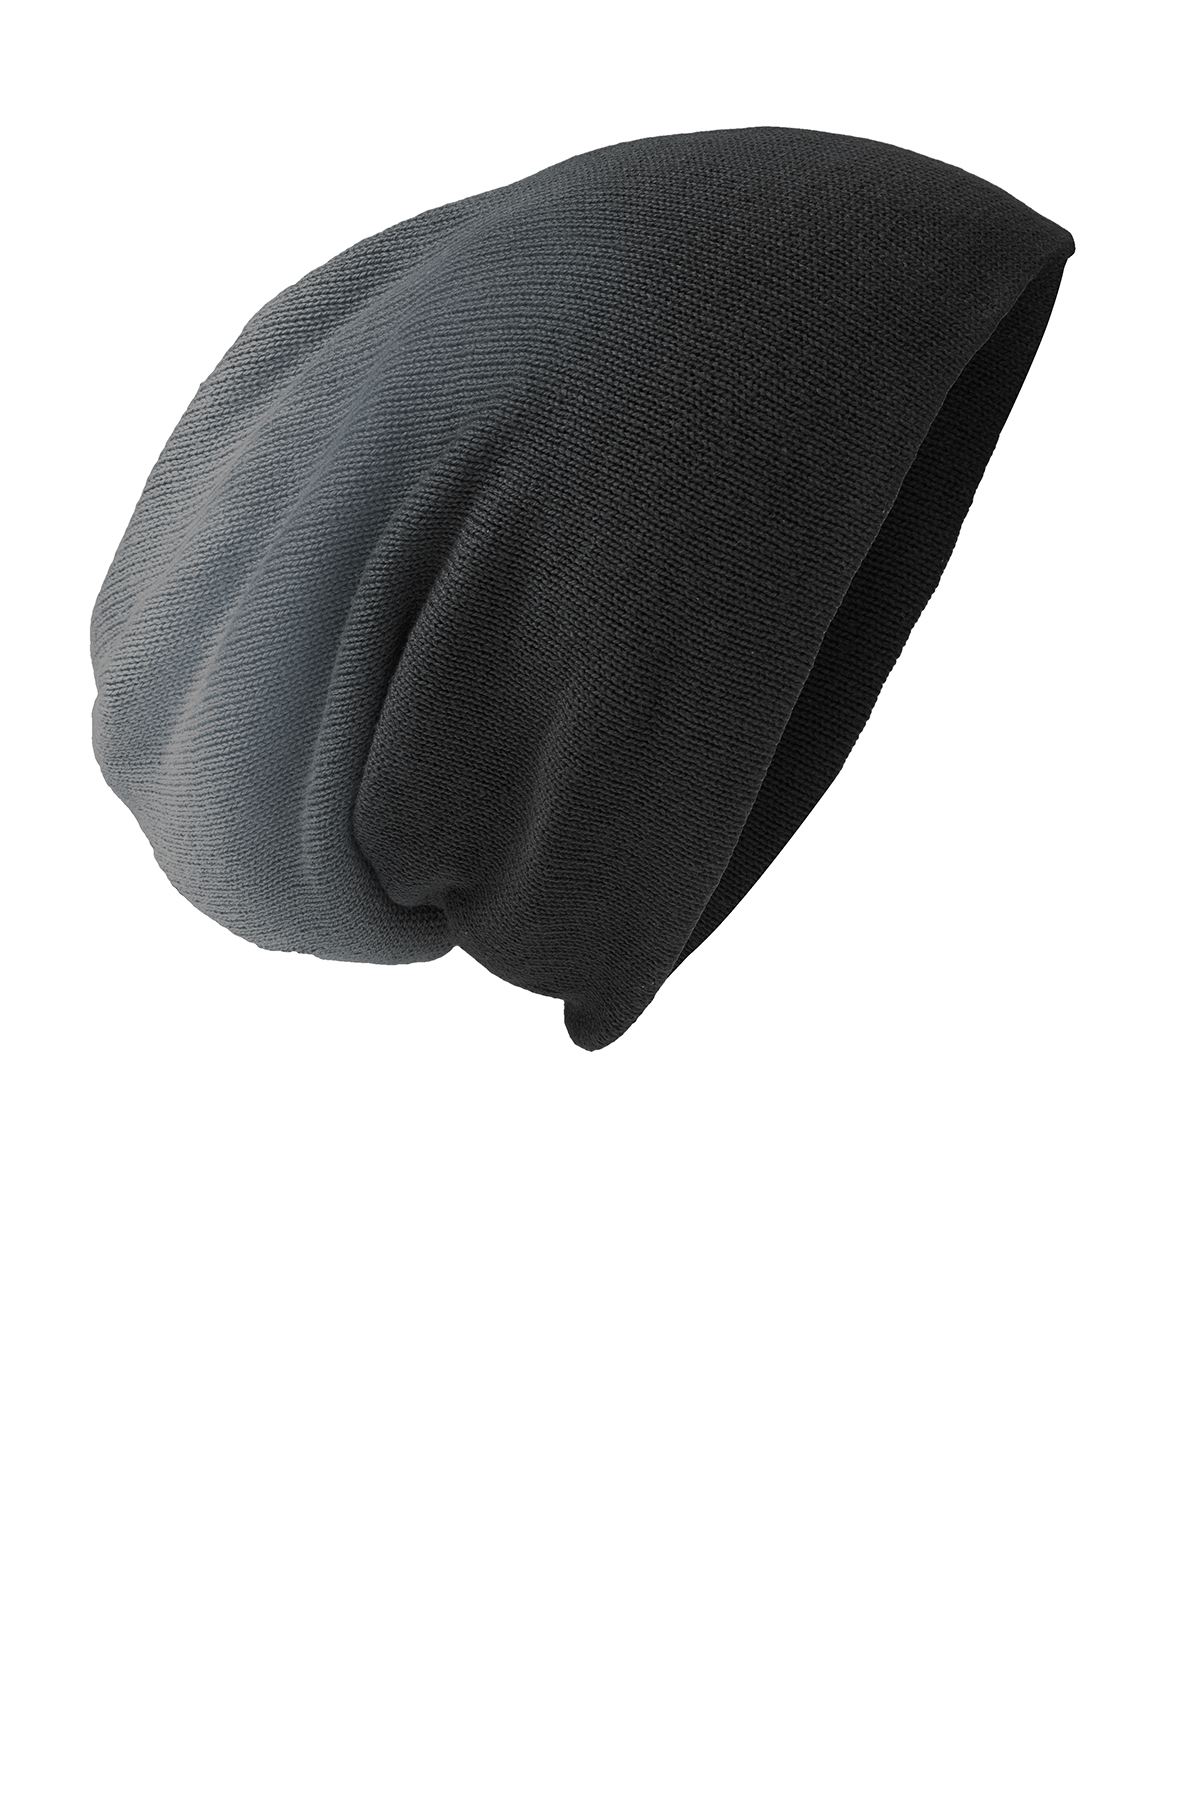 3905f5822e4 ... District ® Slouch Beanie. A maximum of 8 logos have been uploaded.  Please remove a logo from My Logos to continue